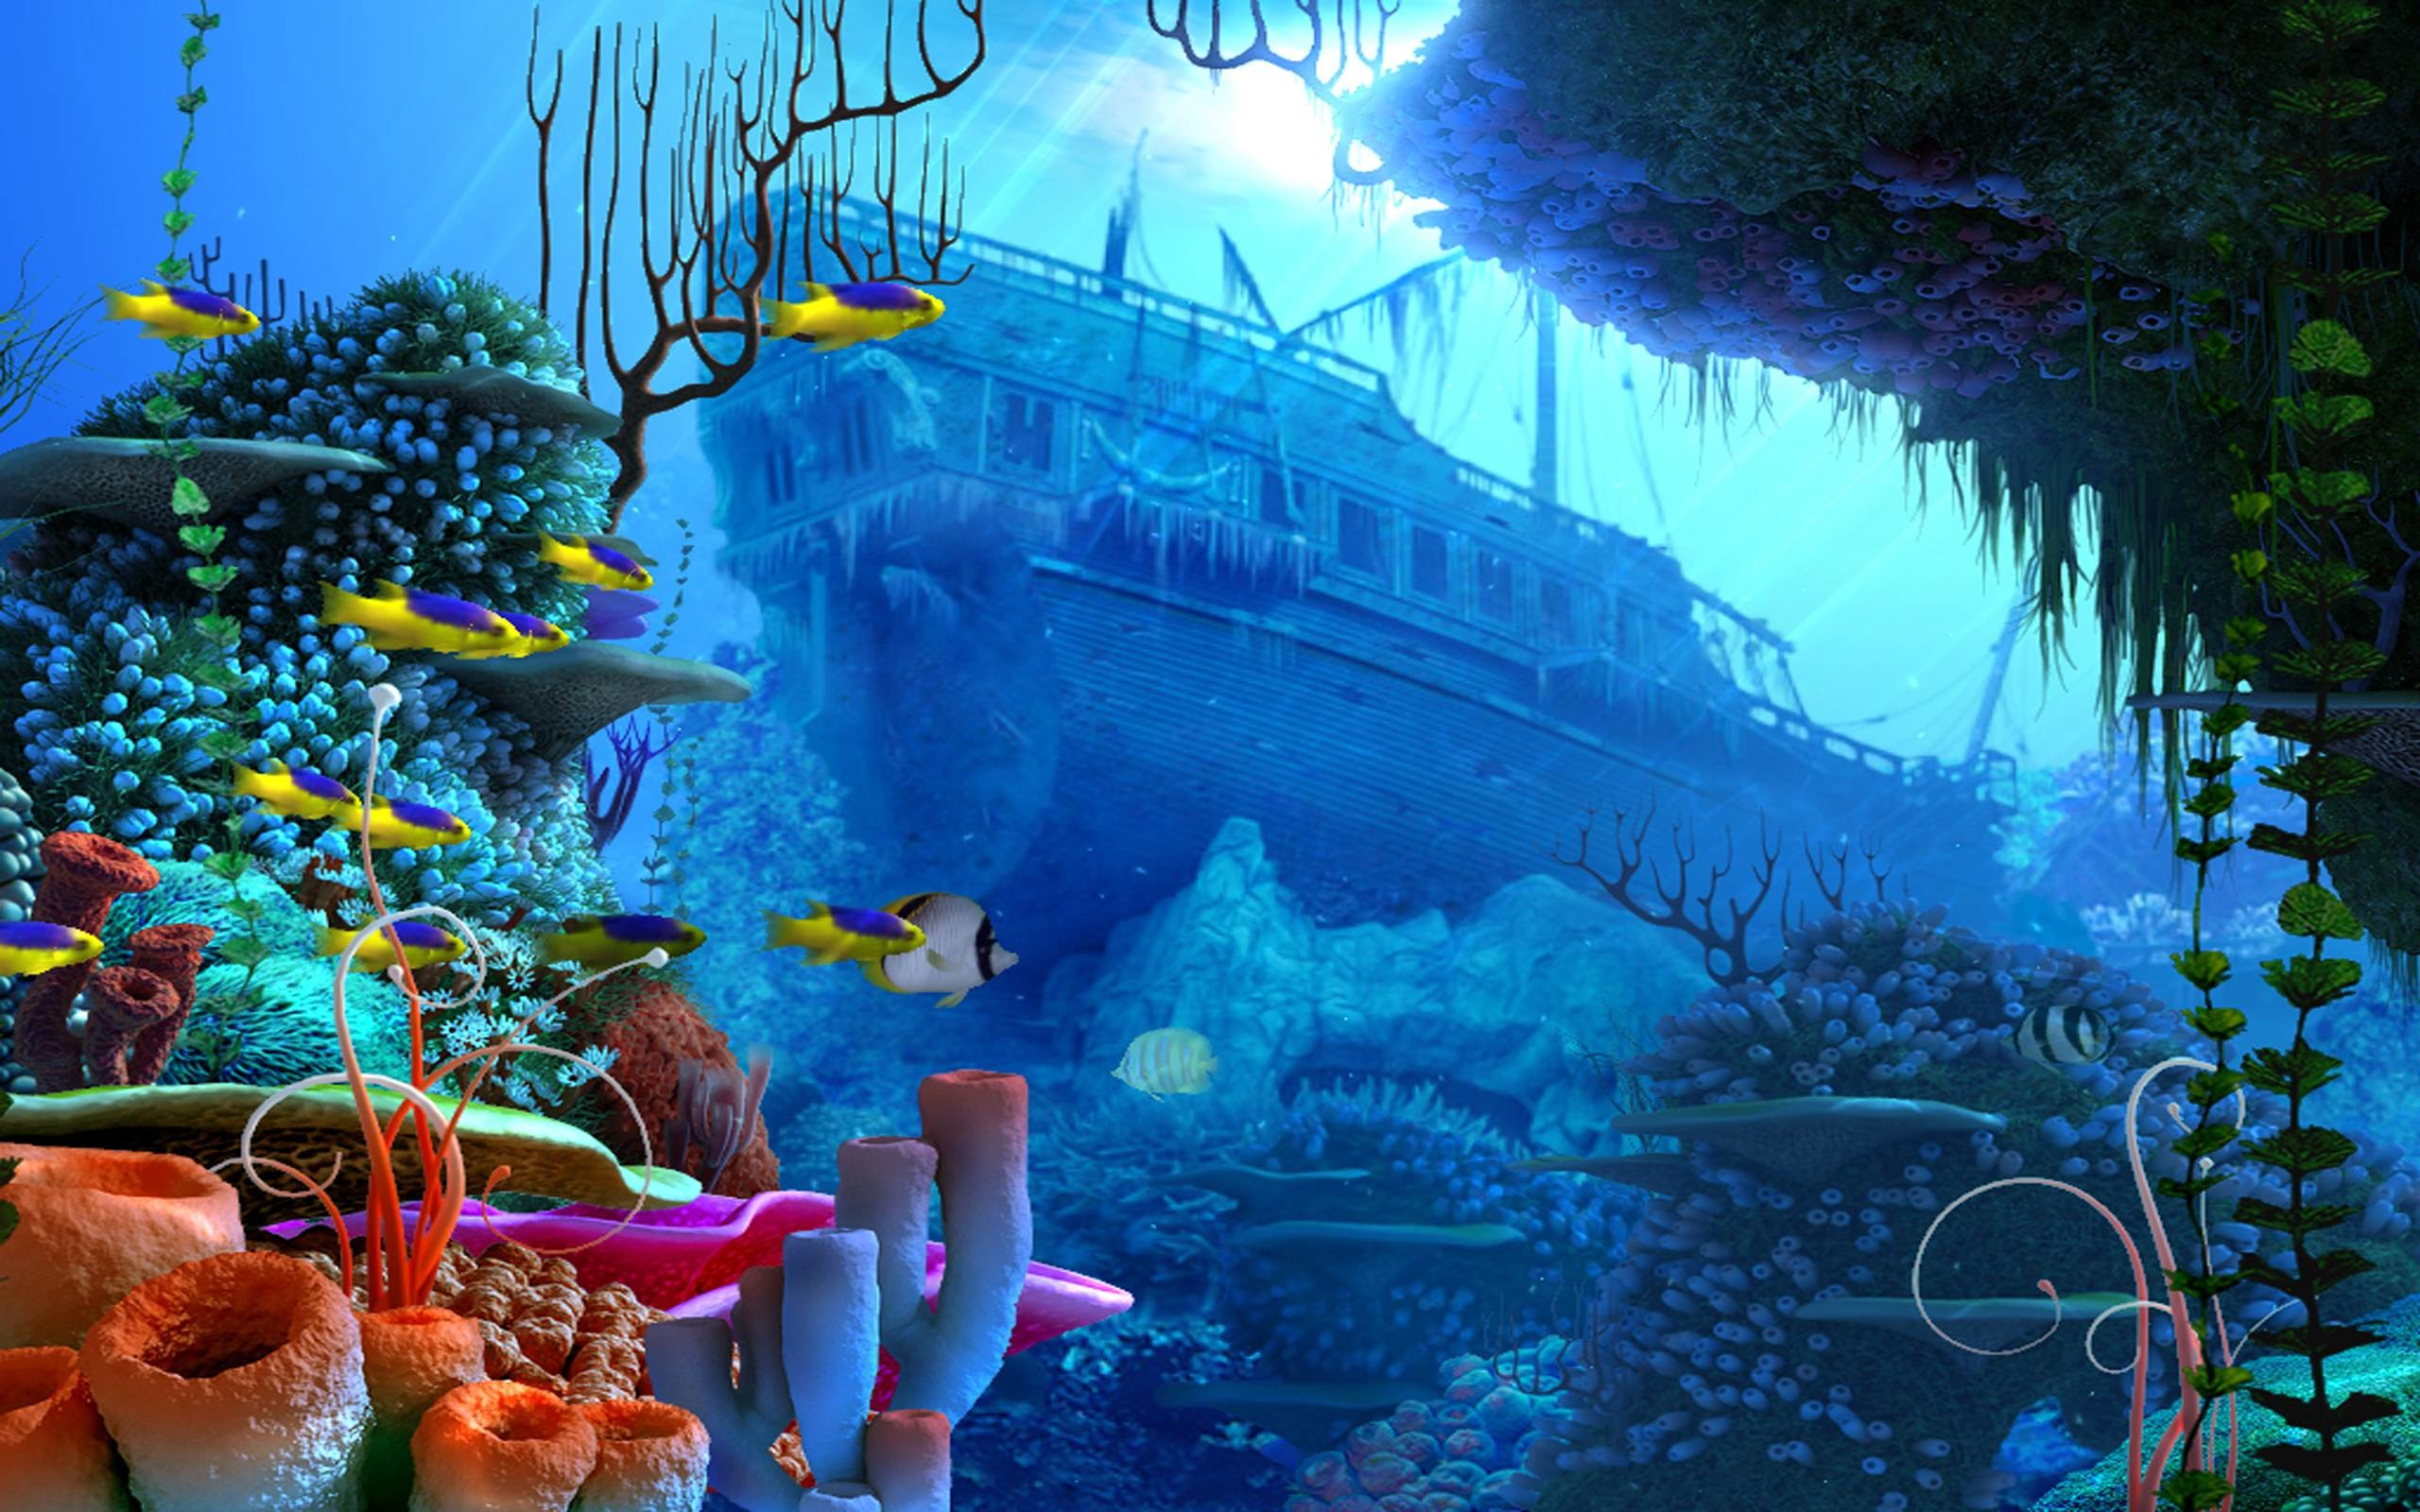 2560x1600 Underwater Wallpapers - Full HD wallpaper search